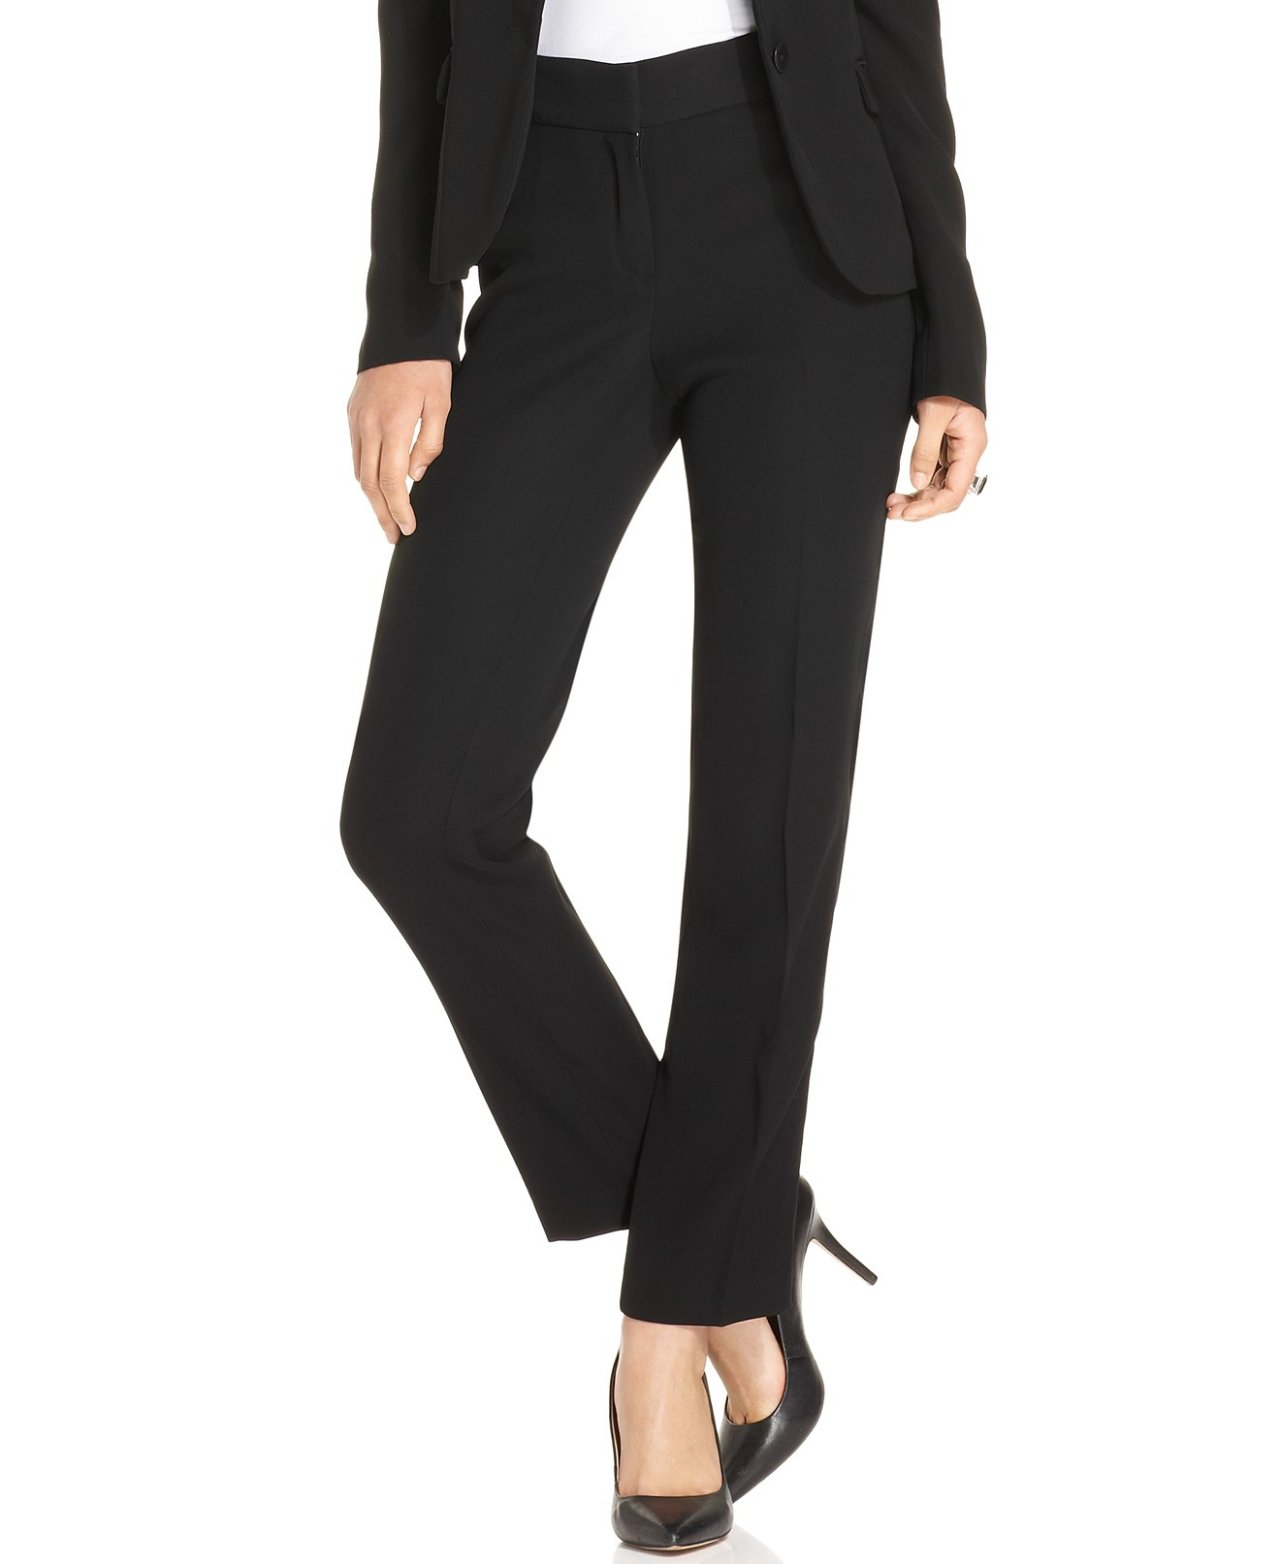 Skinny Pants. Add a pair of skinny pants to any casual wardrobe and up the level of sophistication, comfort, and style. These men's, women's and juniors pants are designed to combine a stylish look with a comfortable fit for a casual look that is bold and attention grabbing.